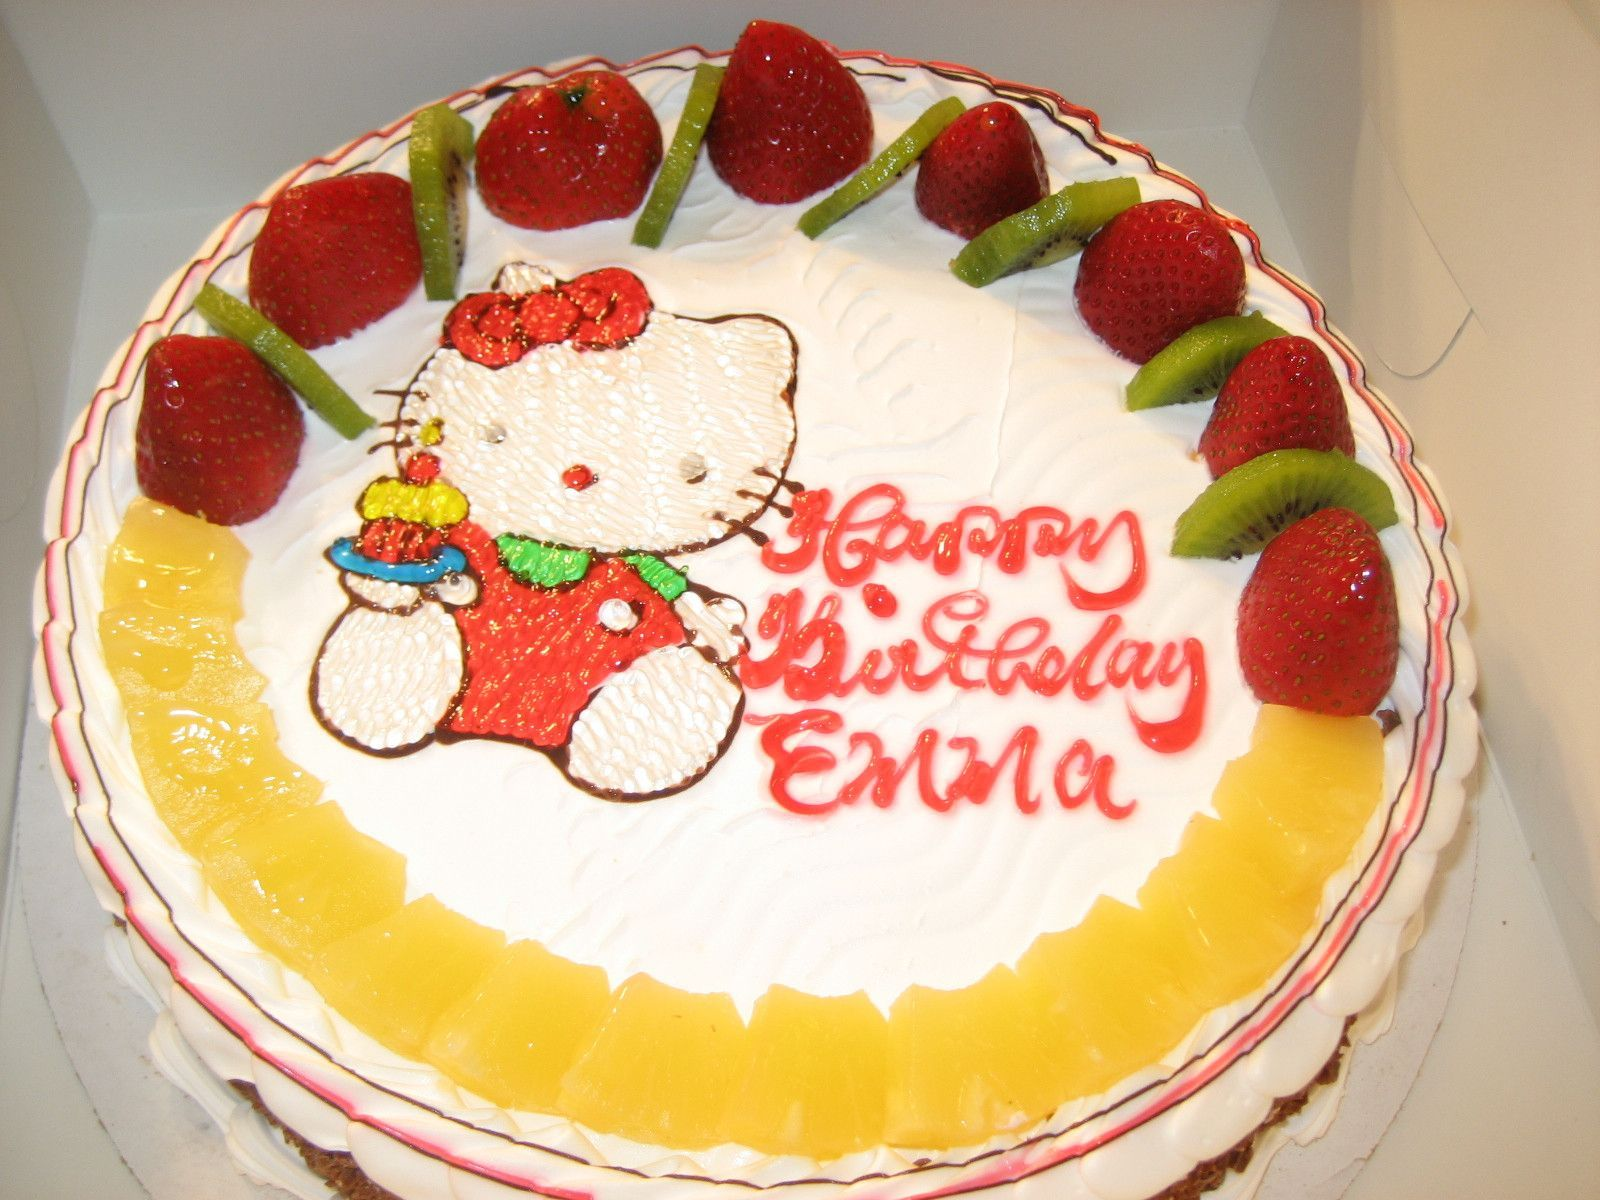 Birthday Cake Images Hd With Name ~ Cake wallpaper hd with name gendiswallpaper